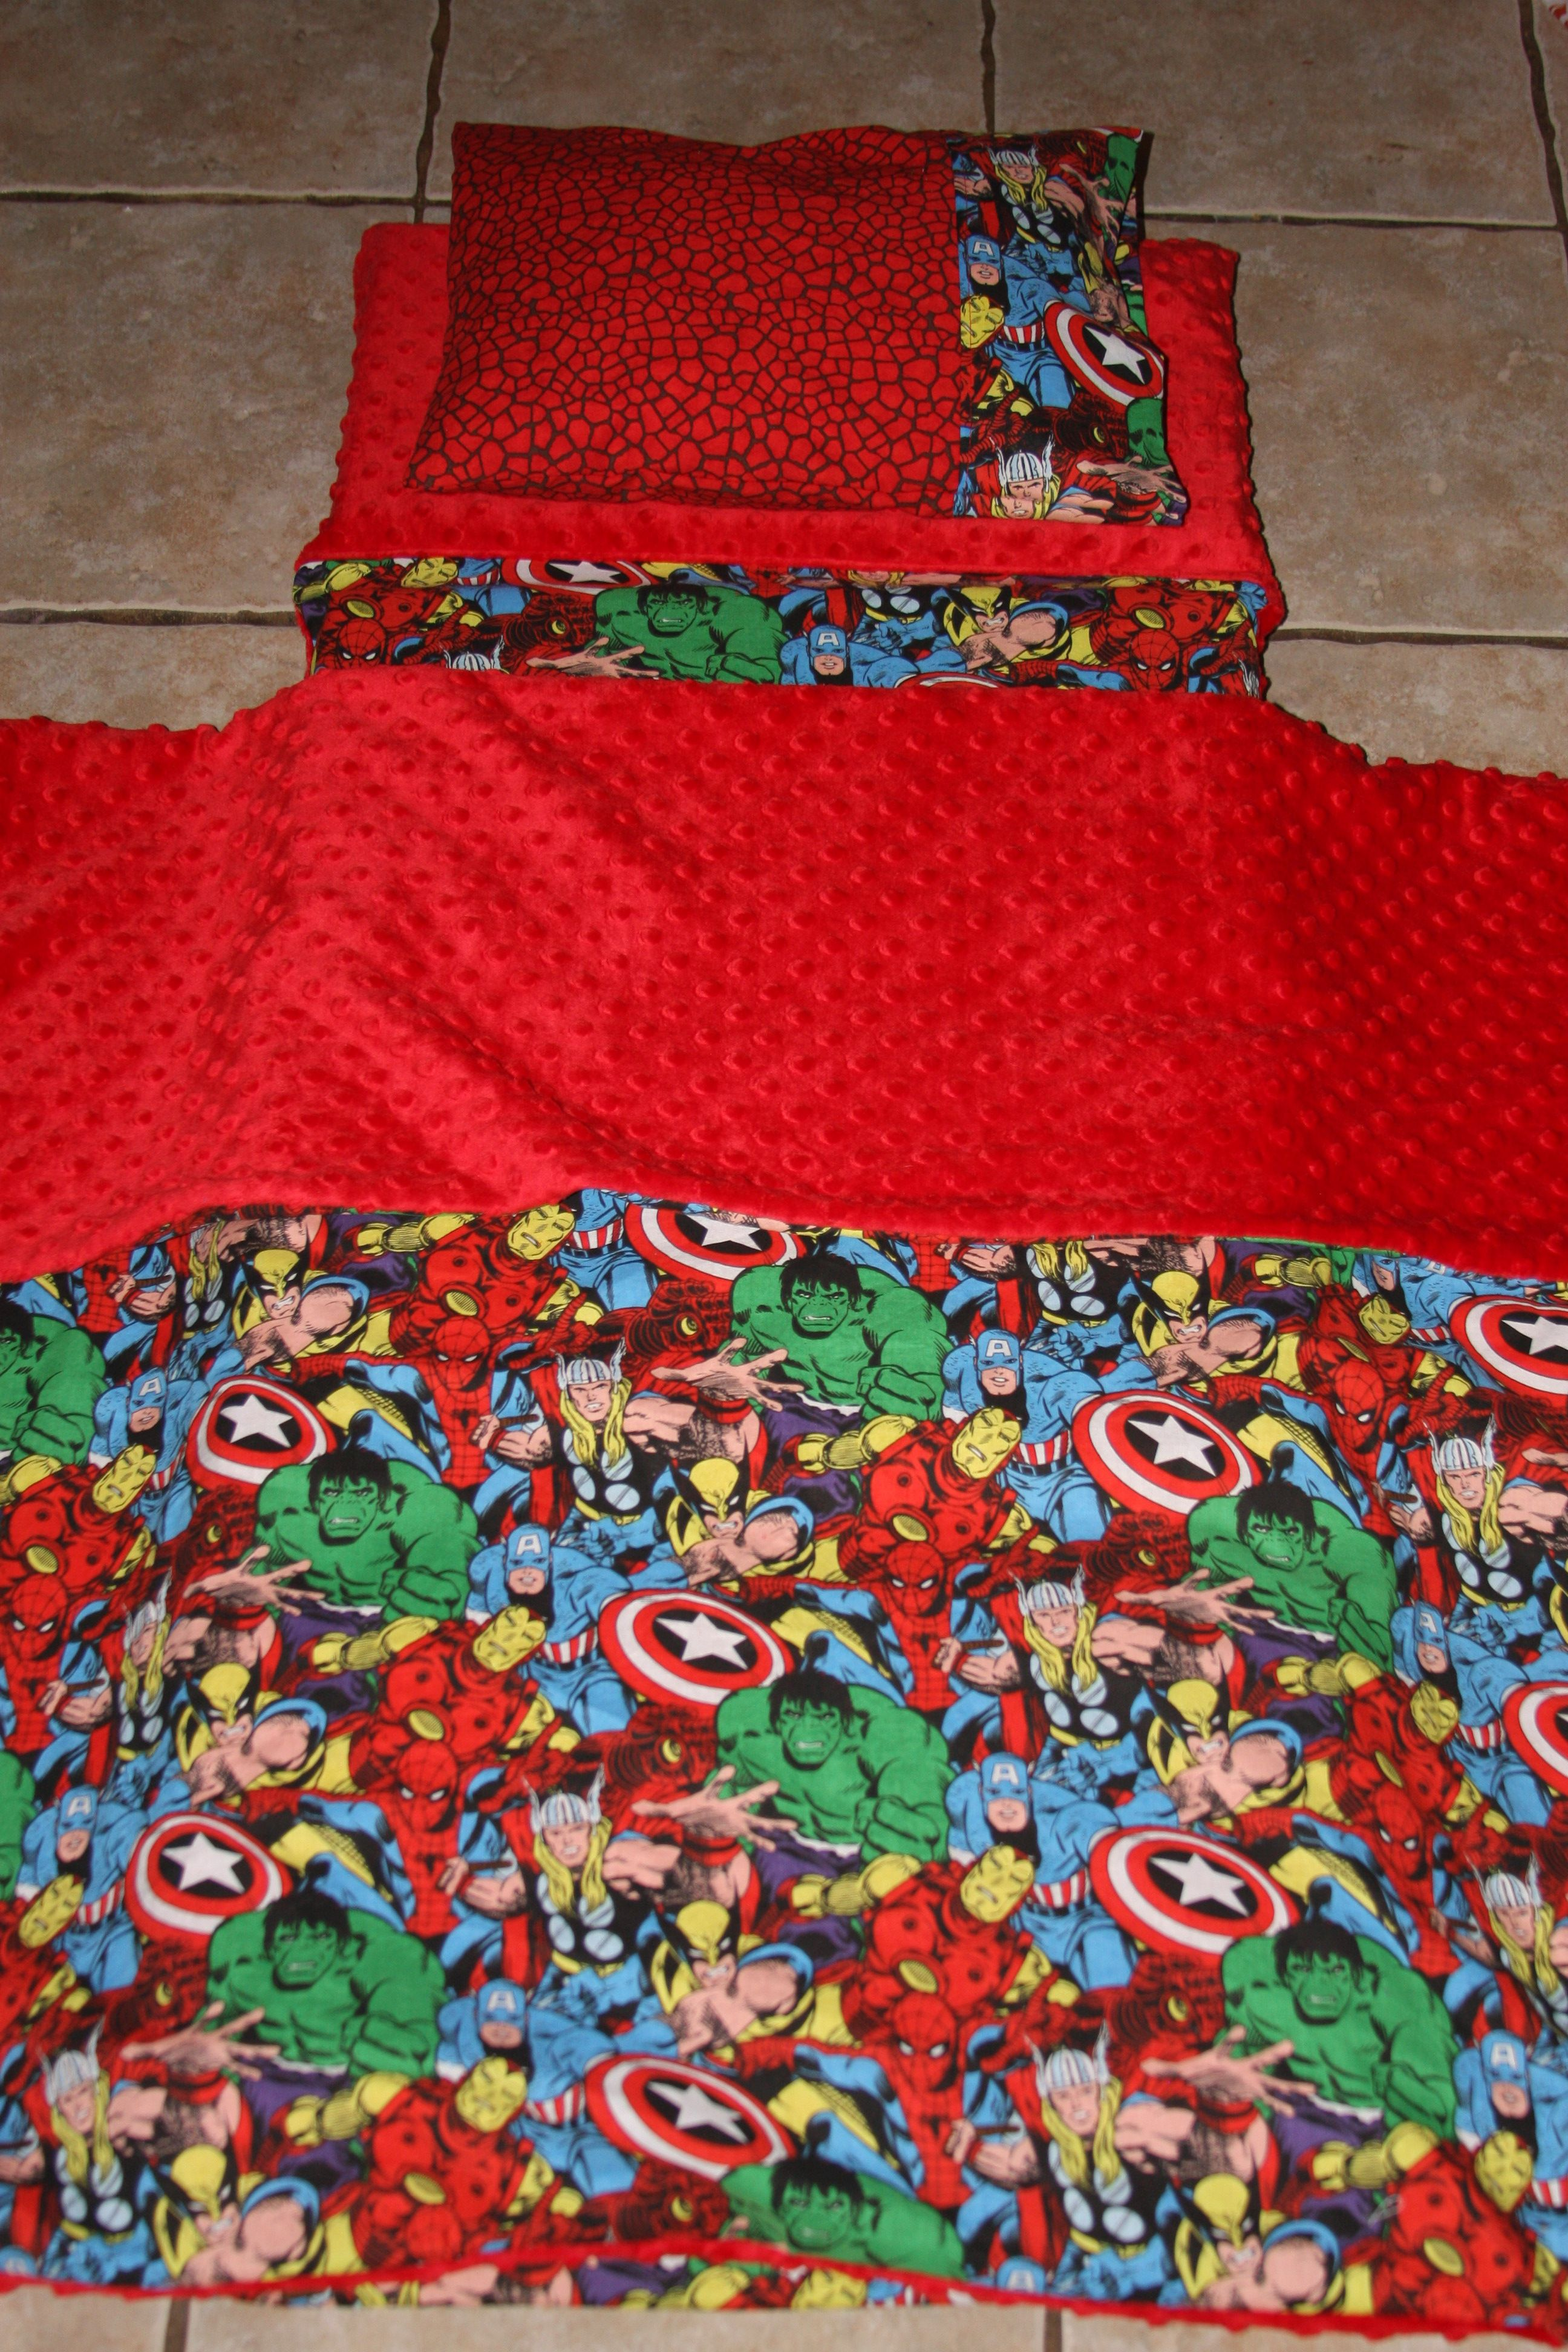 Super Hero Nap Mat Cover Blanket Pillow And Pillow Case